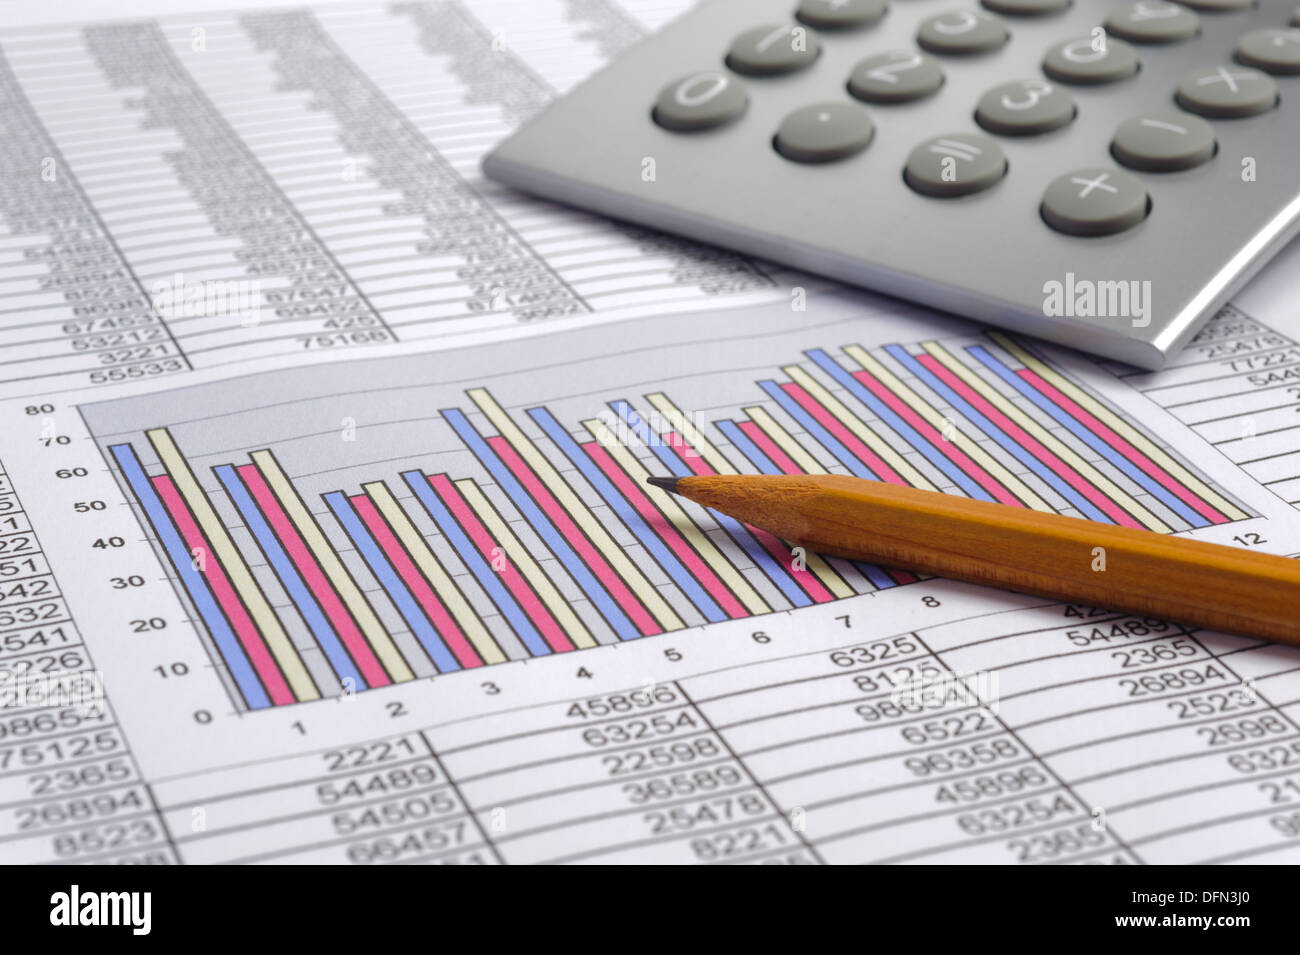 finance business calculation with calculator, chart and pencil - Stock Image